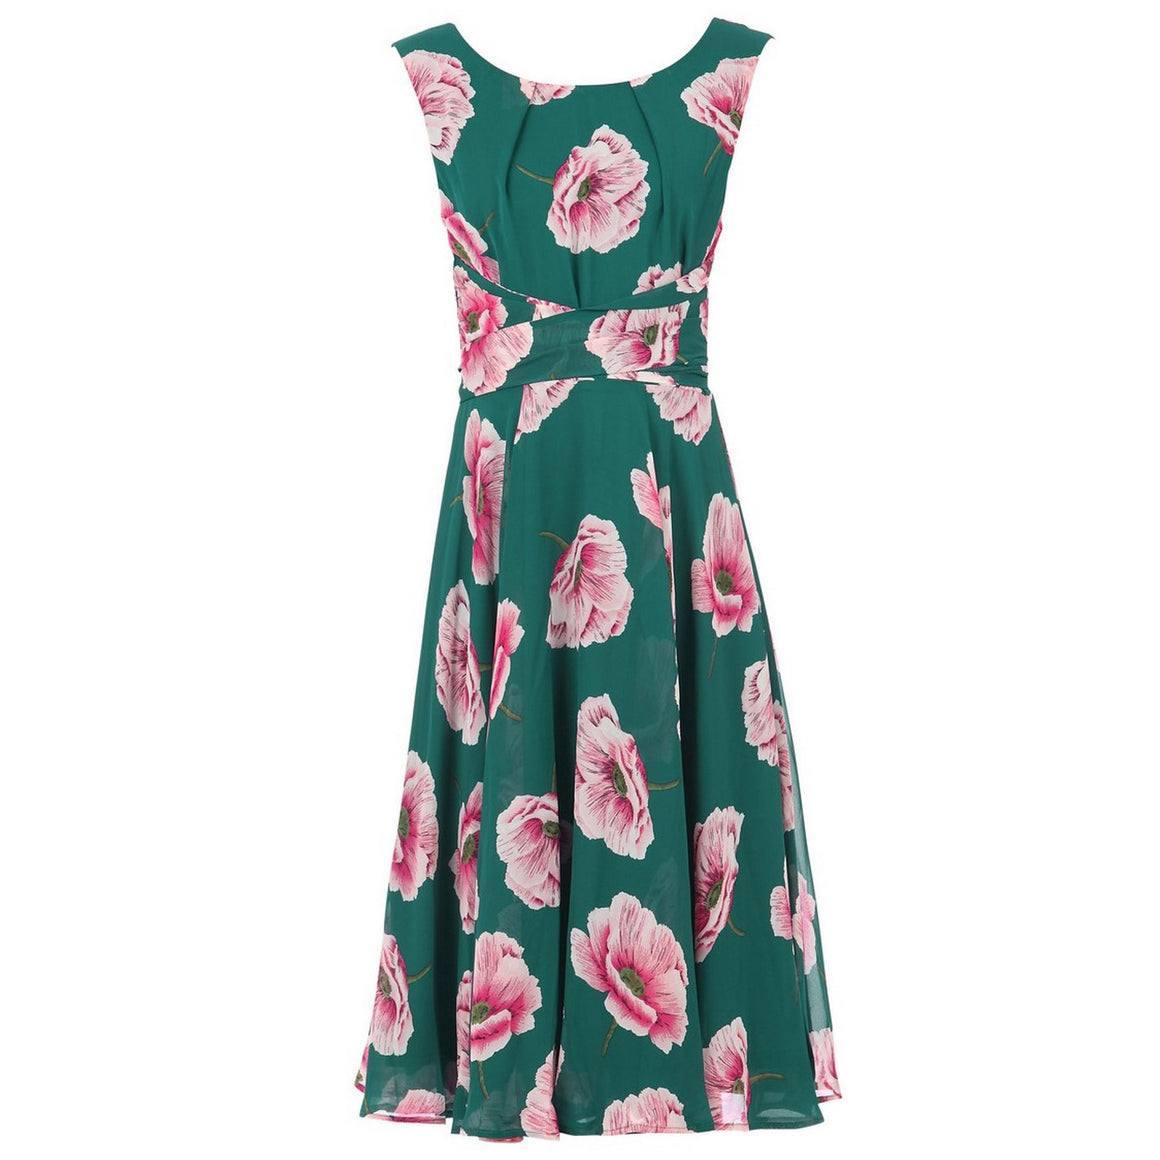 Jolie Moi Teal Green Floral Sleeveless Chiffon 50s Swing Audrey Dress - Pretty Kitty Fashion